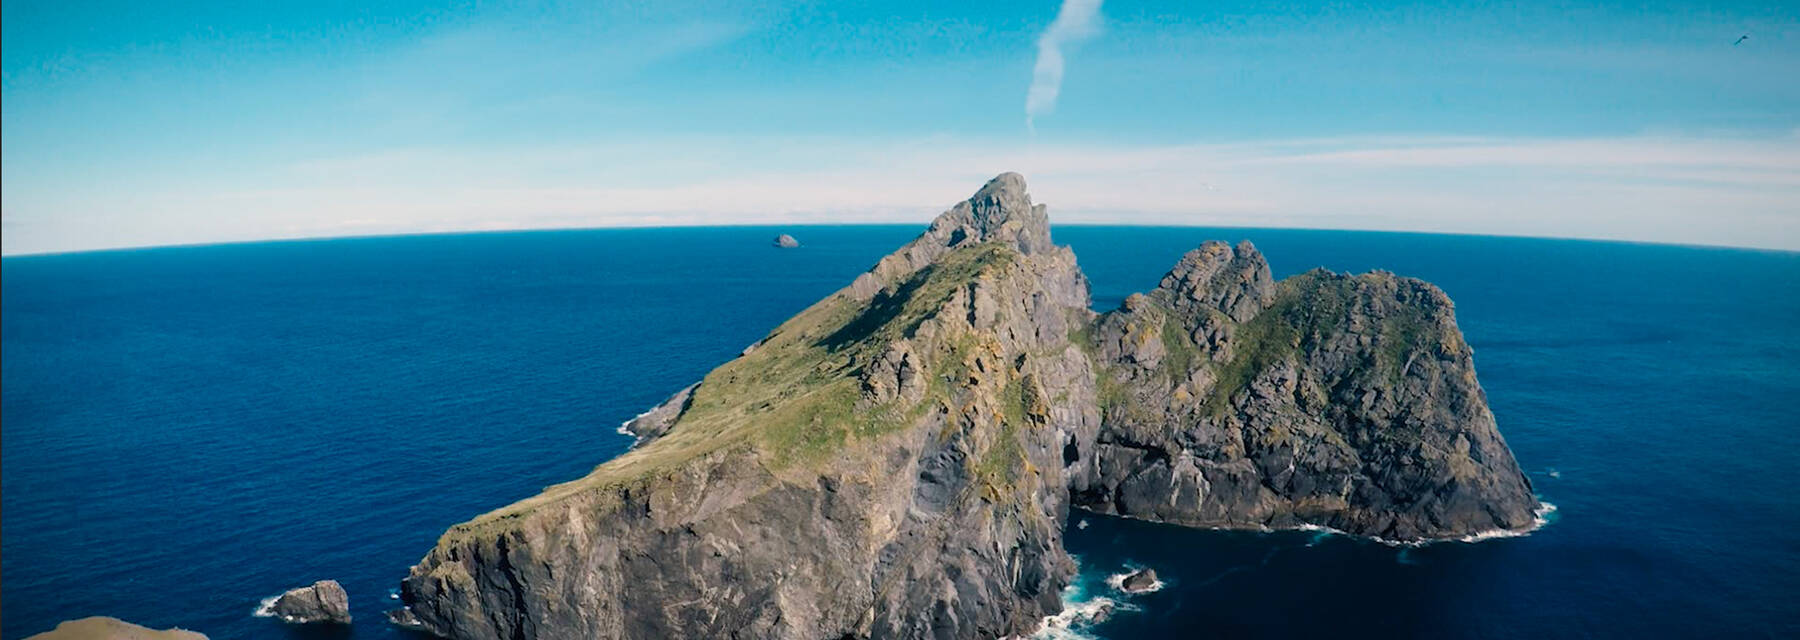 The isle of Hirta, in the St Kilda archipelago